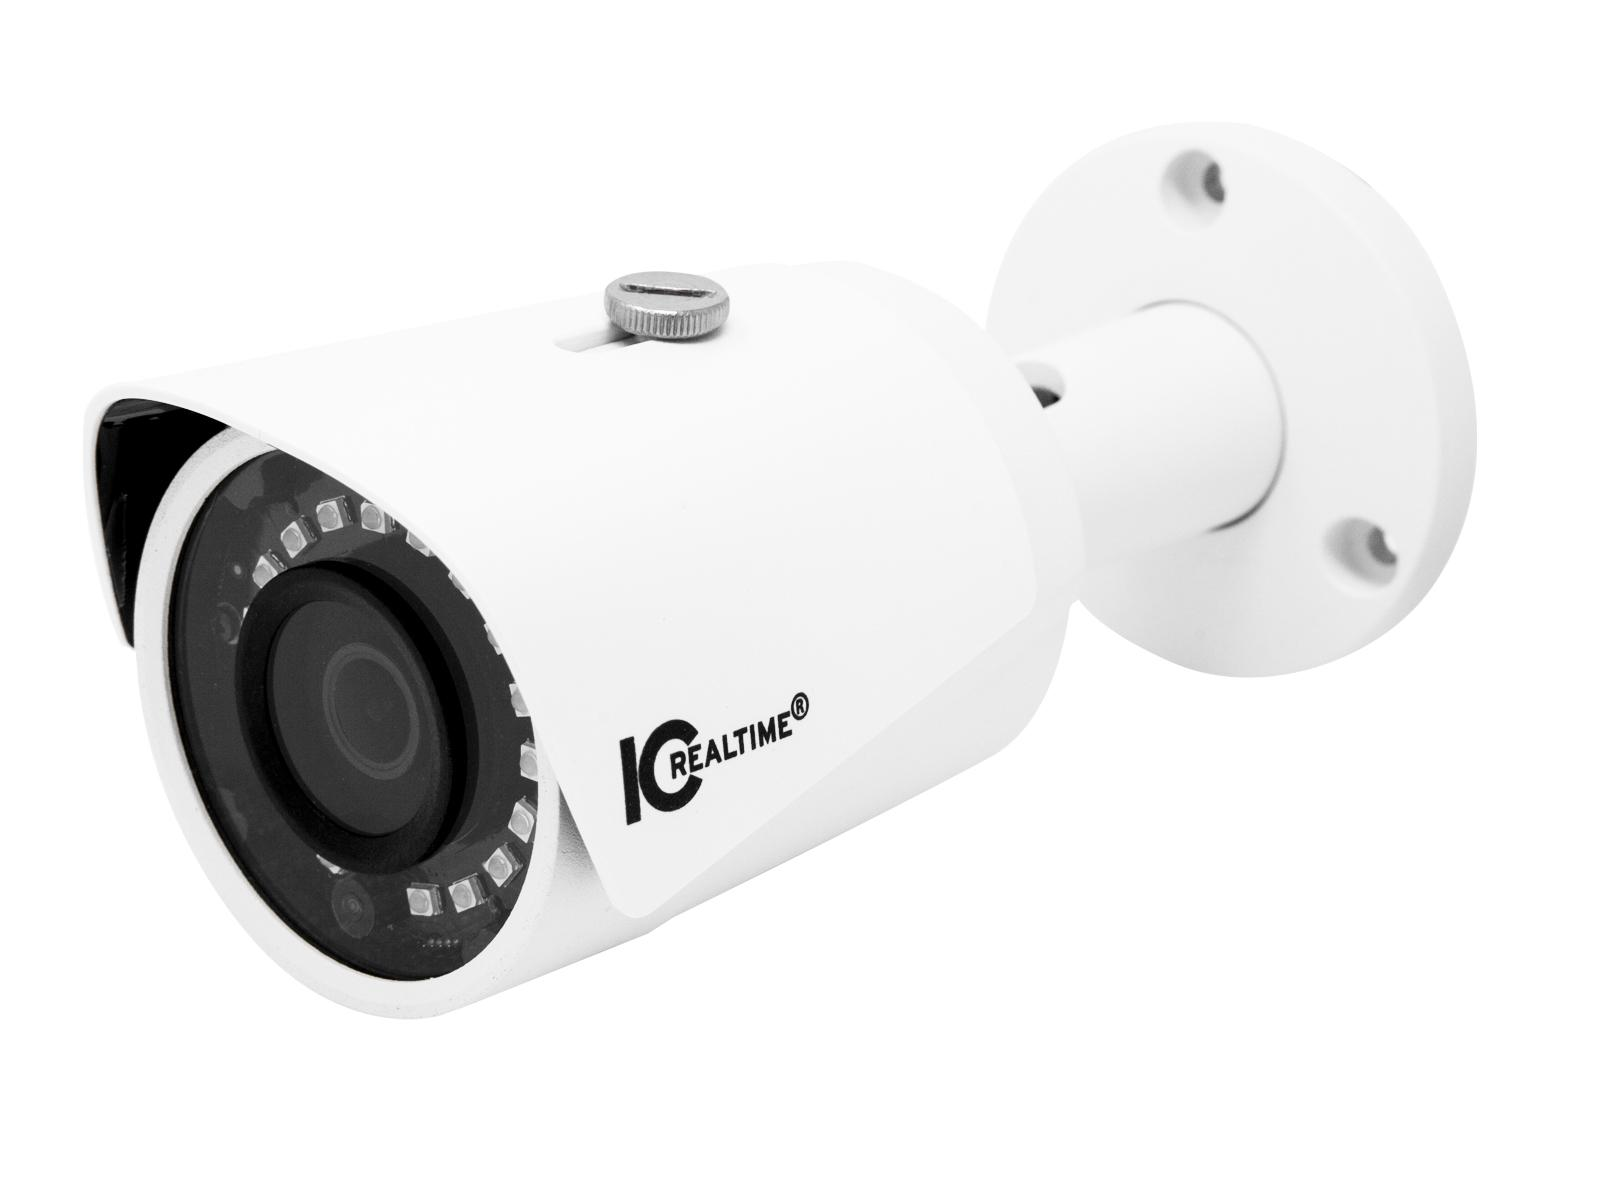 ICR-B4001-IR 4MP IP Indoor/Outdoor Small Size Bullet Camera with 2.8mm Lens/98ft Smart IR/POE by ICRealtime